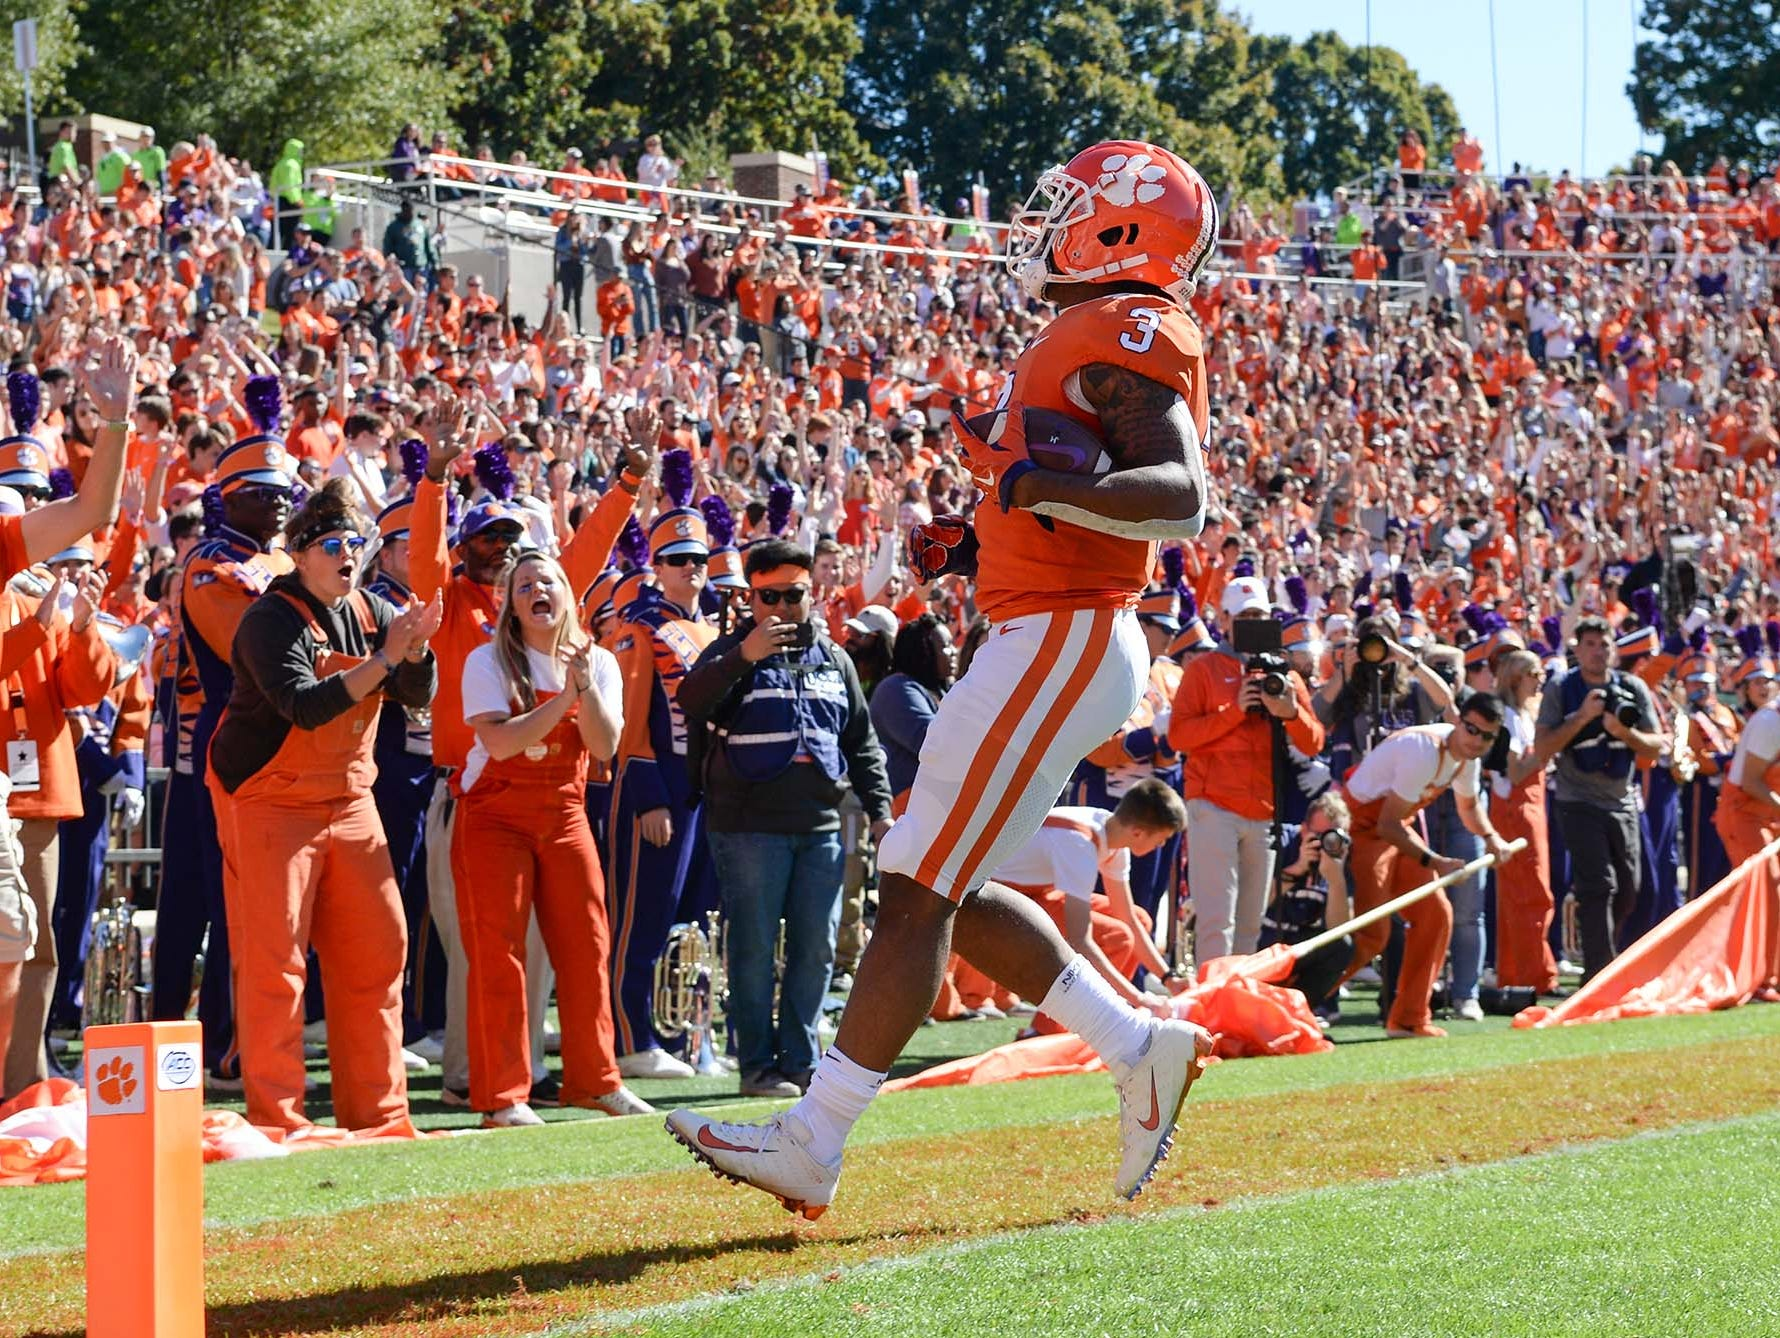 Clemson wide receiver Amari Rodgers (3) scores a three-yard touchdown during the first quarter in Memorial Stadium on Saturday, November 3, 2018.